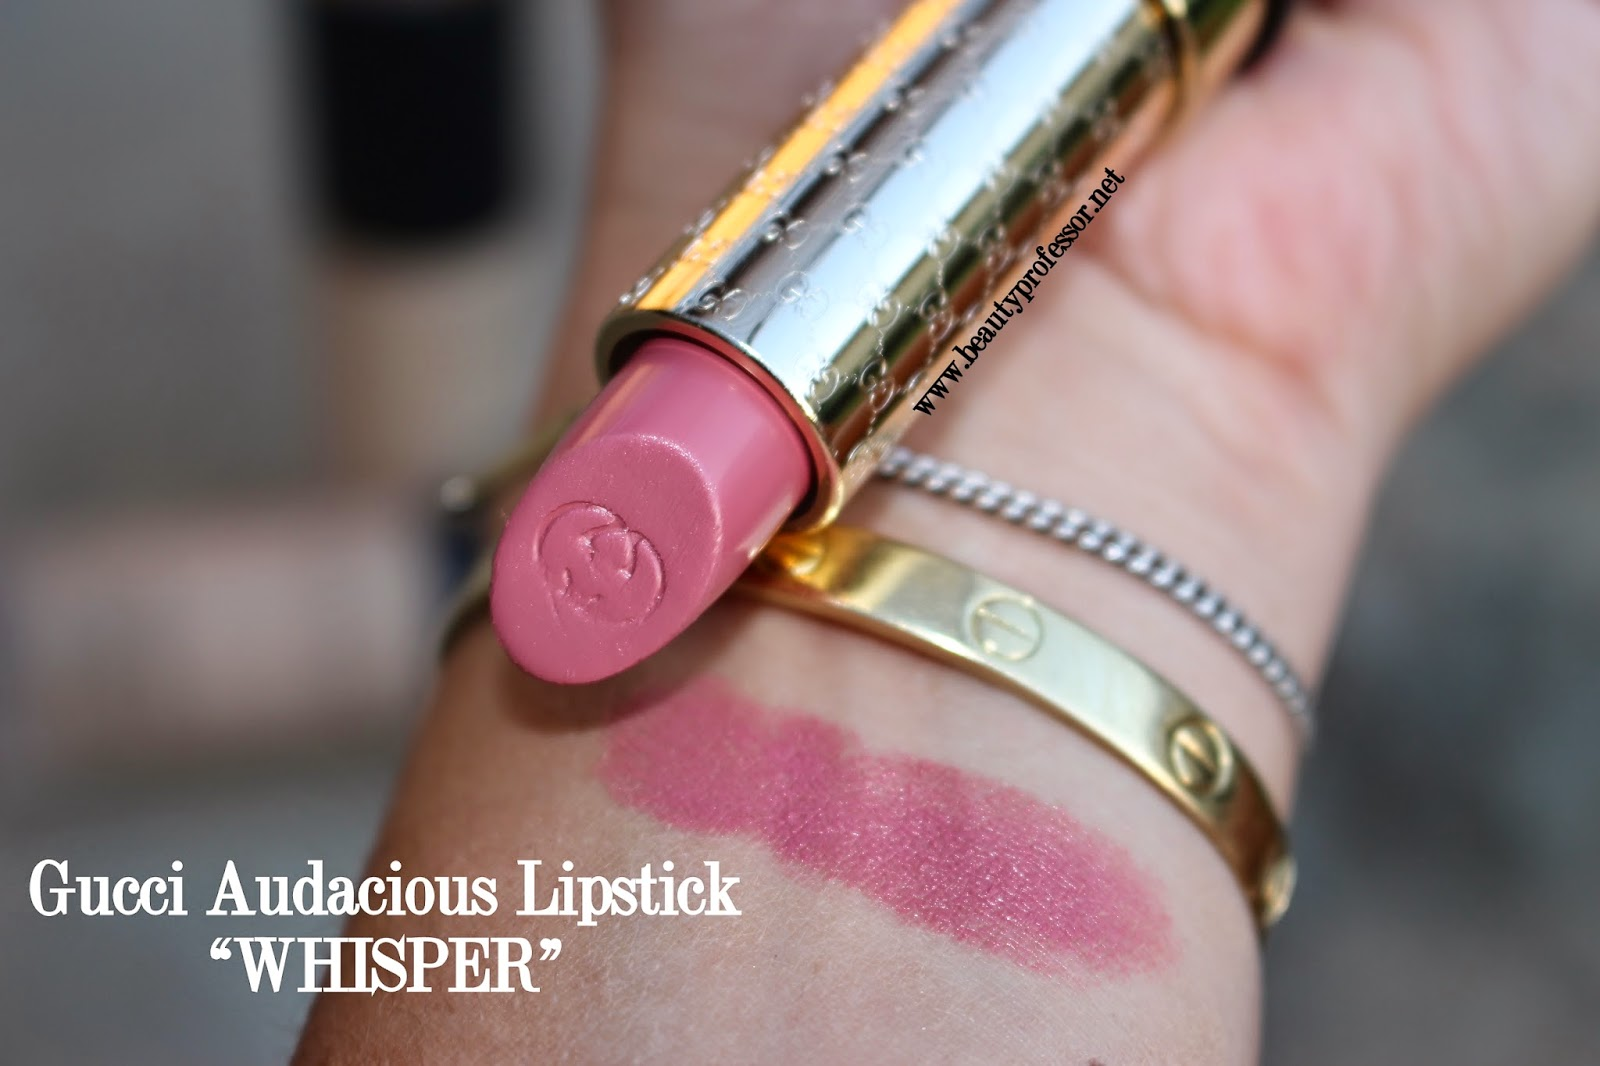 gucci whisper lipstick swatch